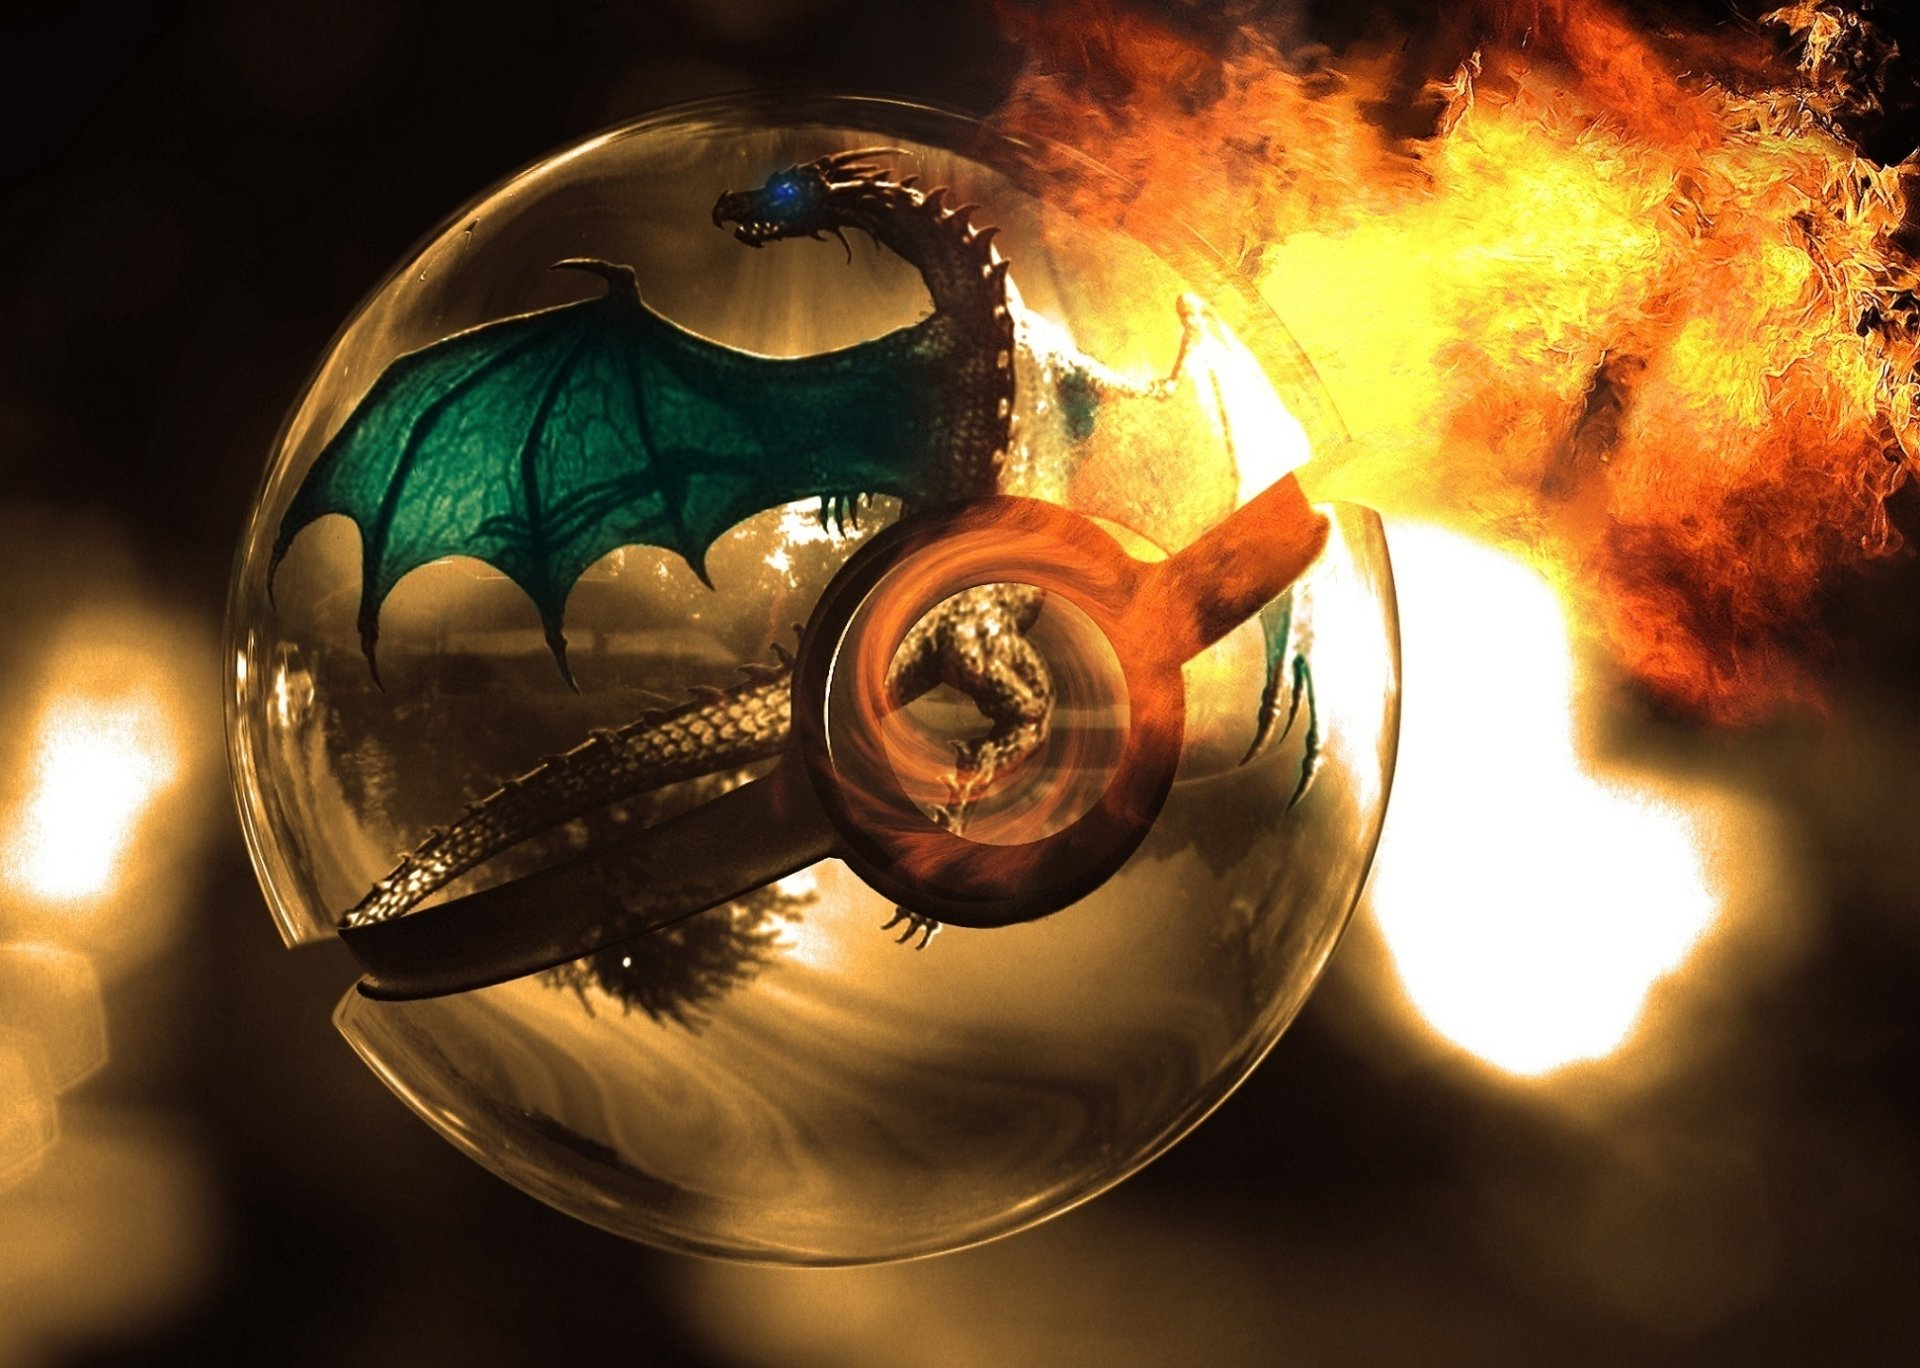 Anime - Pokemon  Pokémon Charizard (Pokémon) Pokeball Dragon Fire Flame Wallpaper